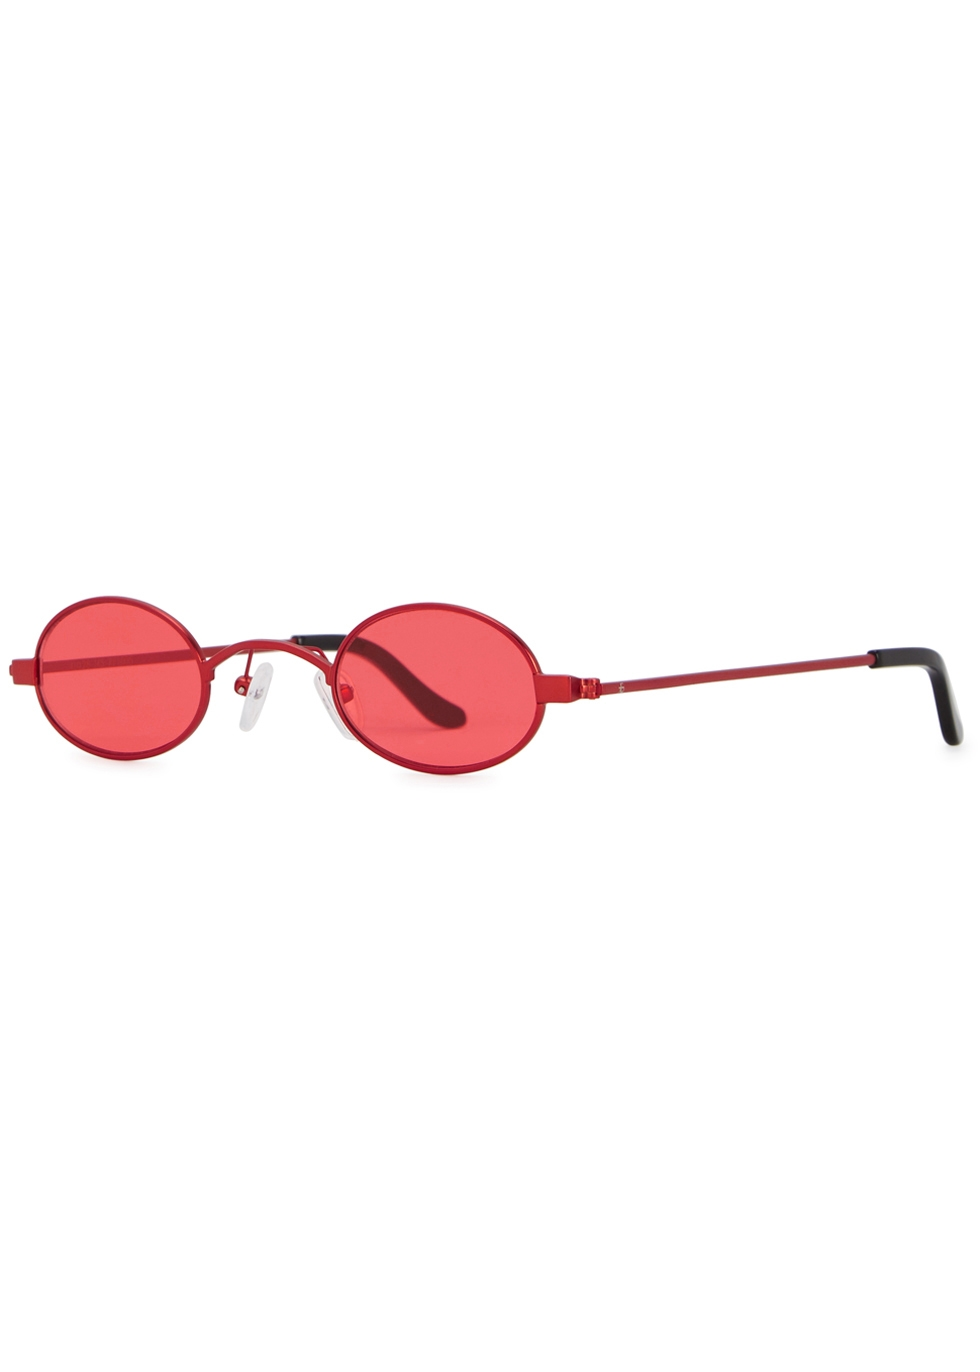 ROBERI AND FRAUD Doris Oval-Frame Sunglasses in Red